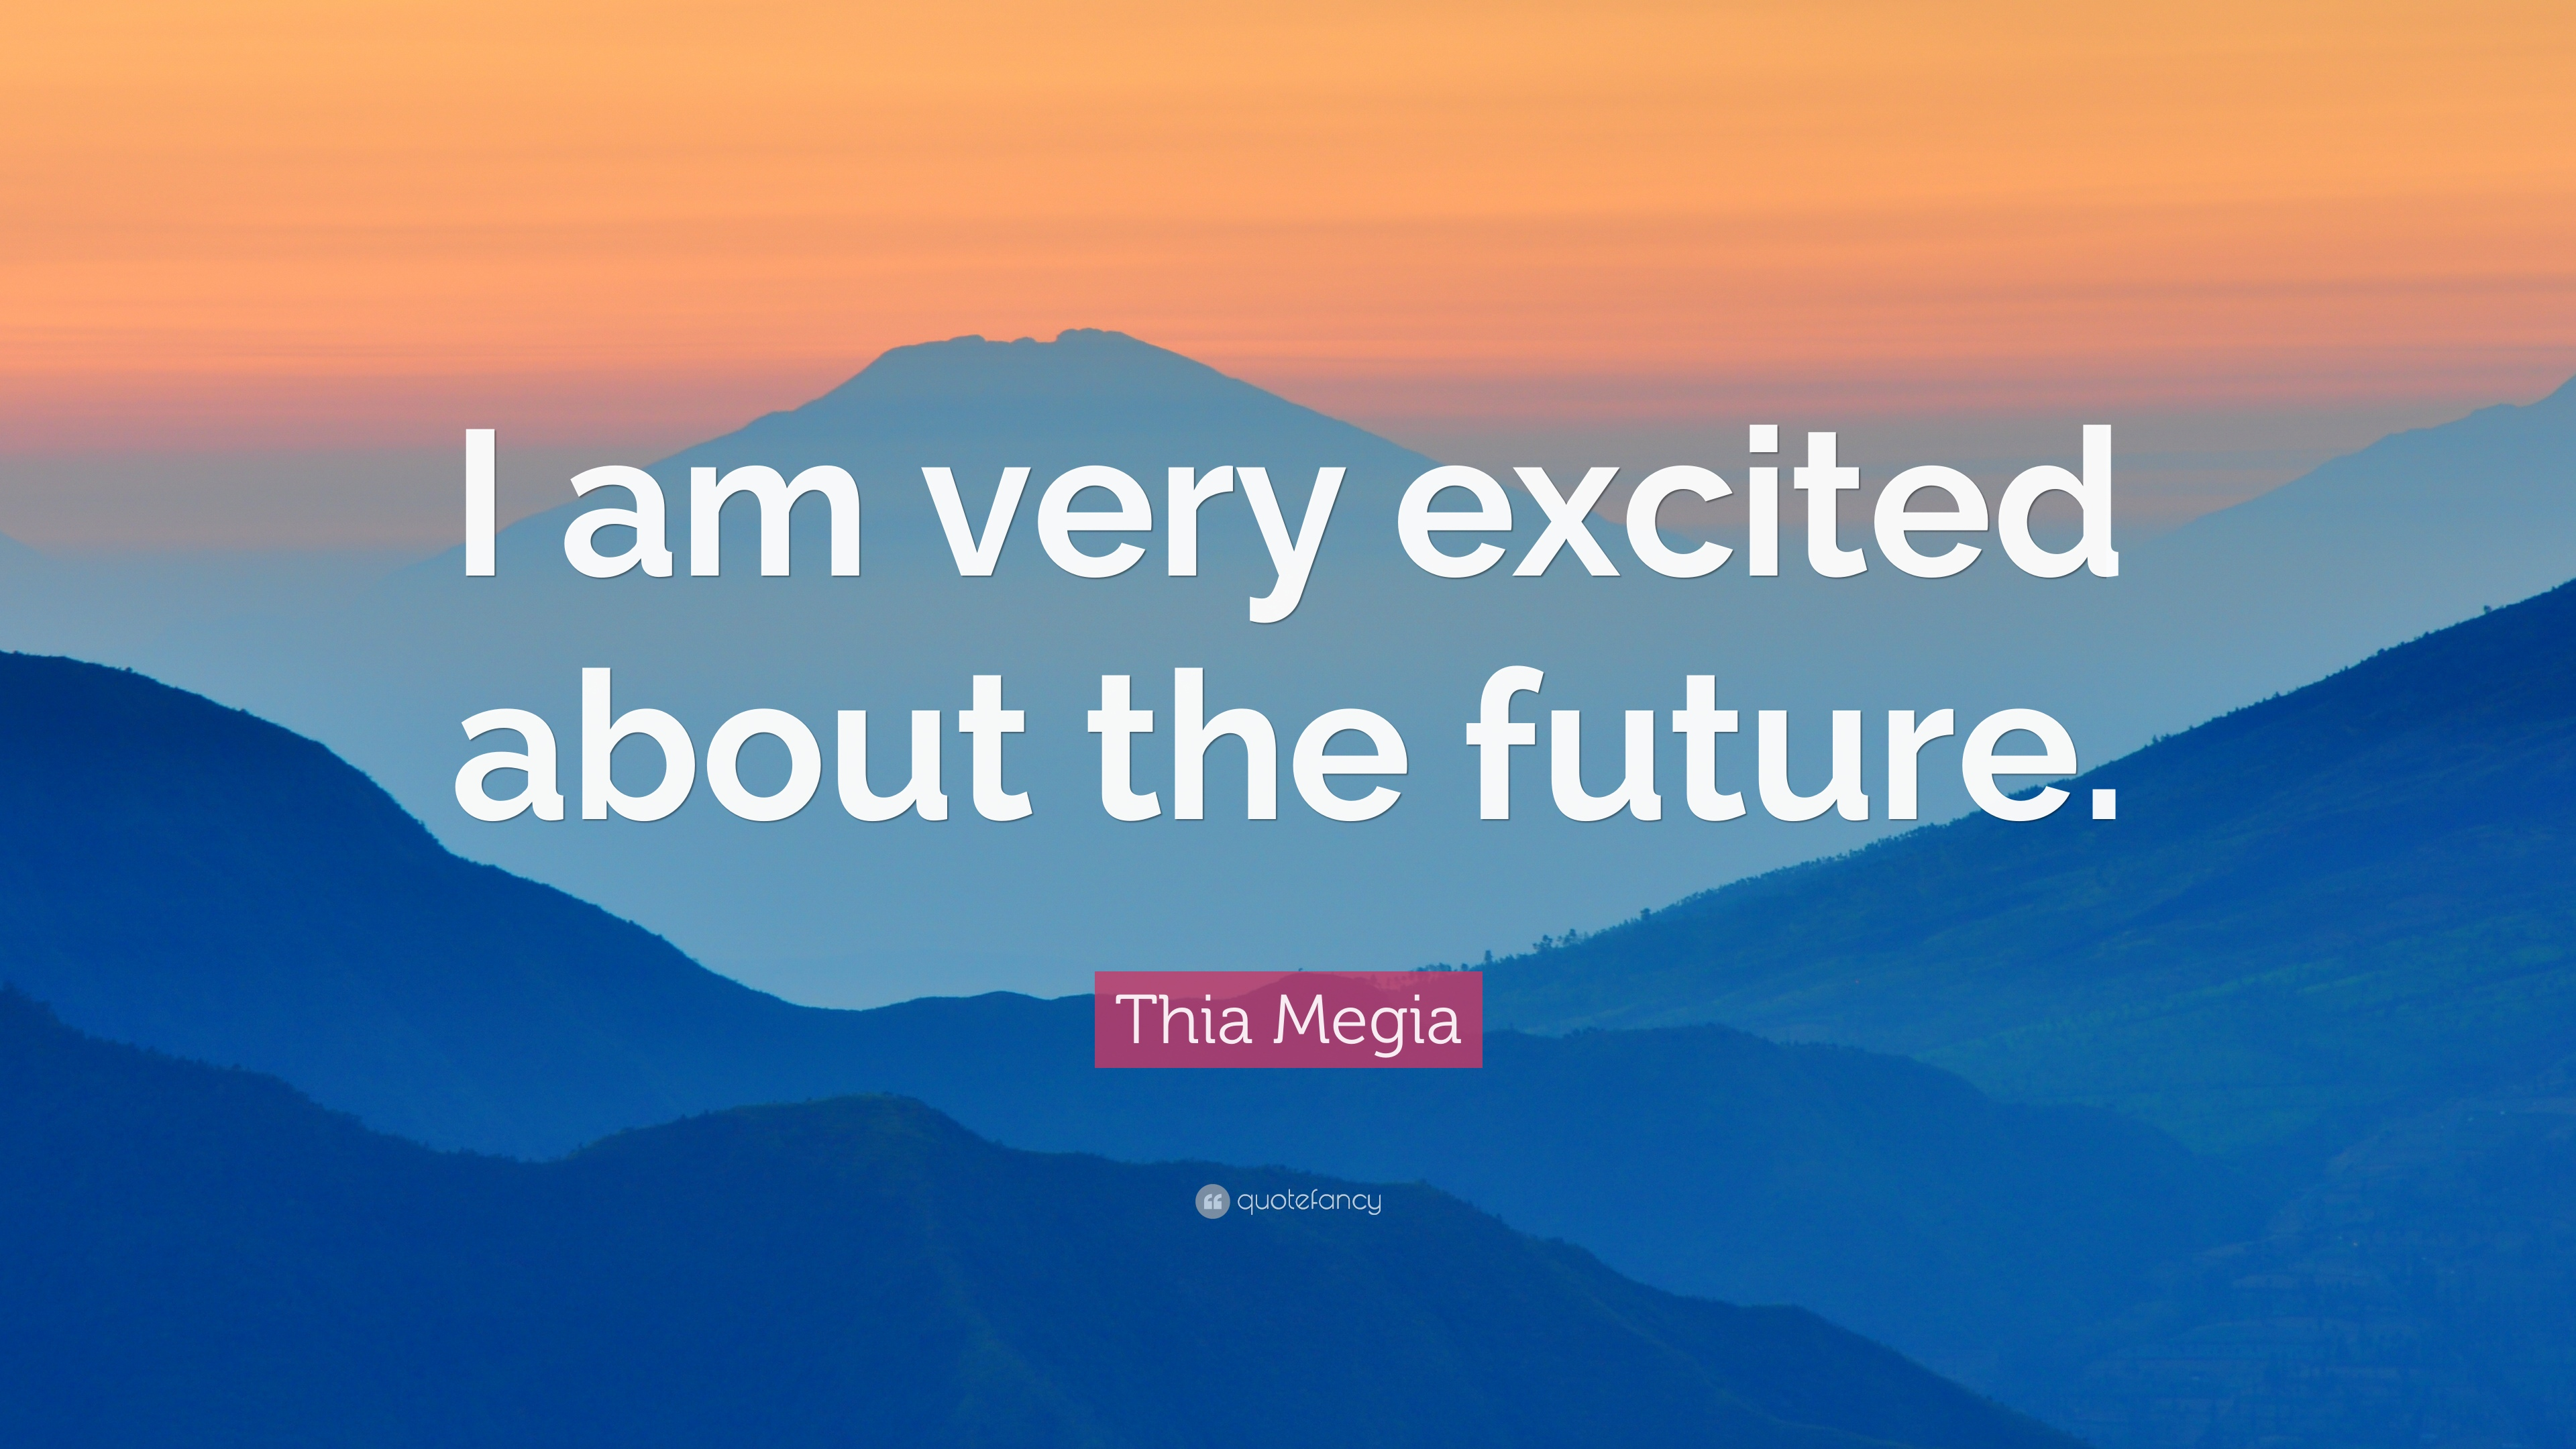 thia megia quotes quotefancy thia megia quote i am very excited about the future